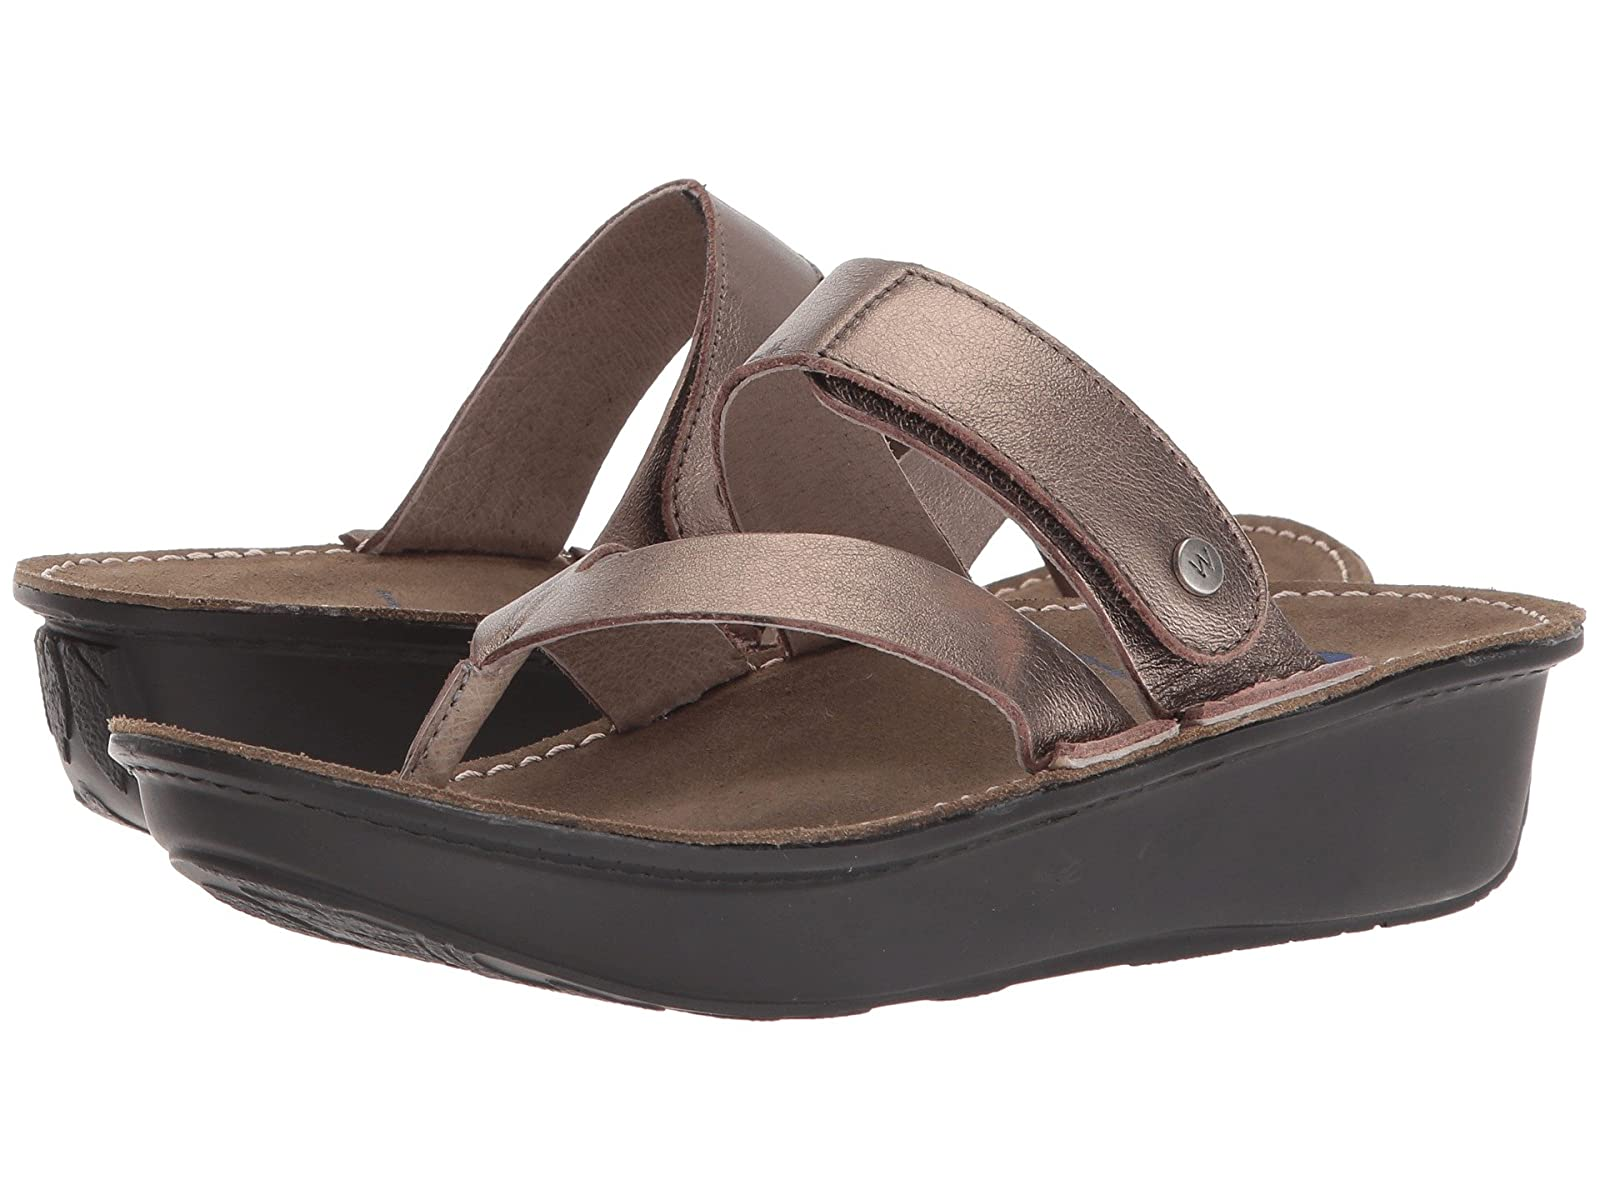 Wolky TahitiAtmospheric grades have affordable shoes